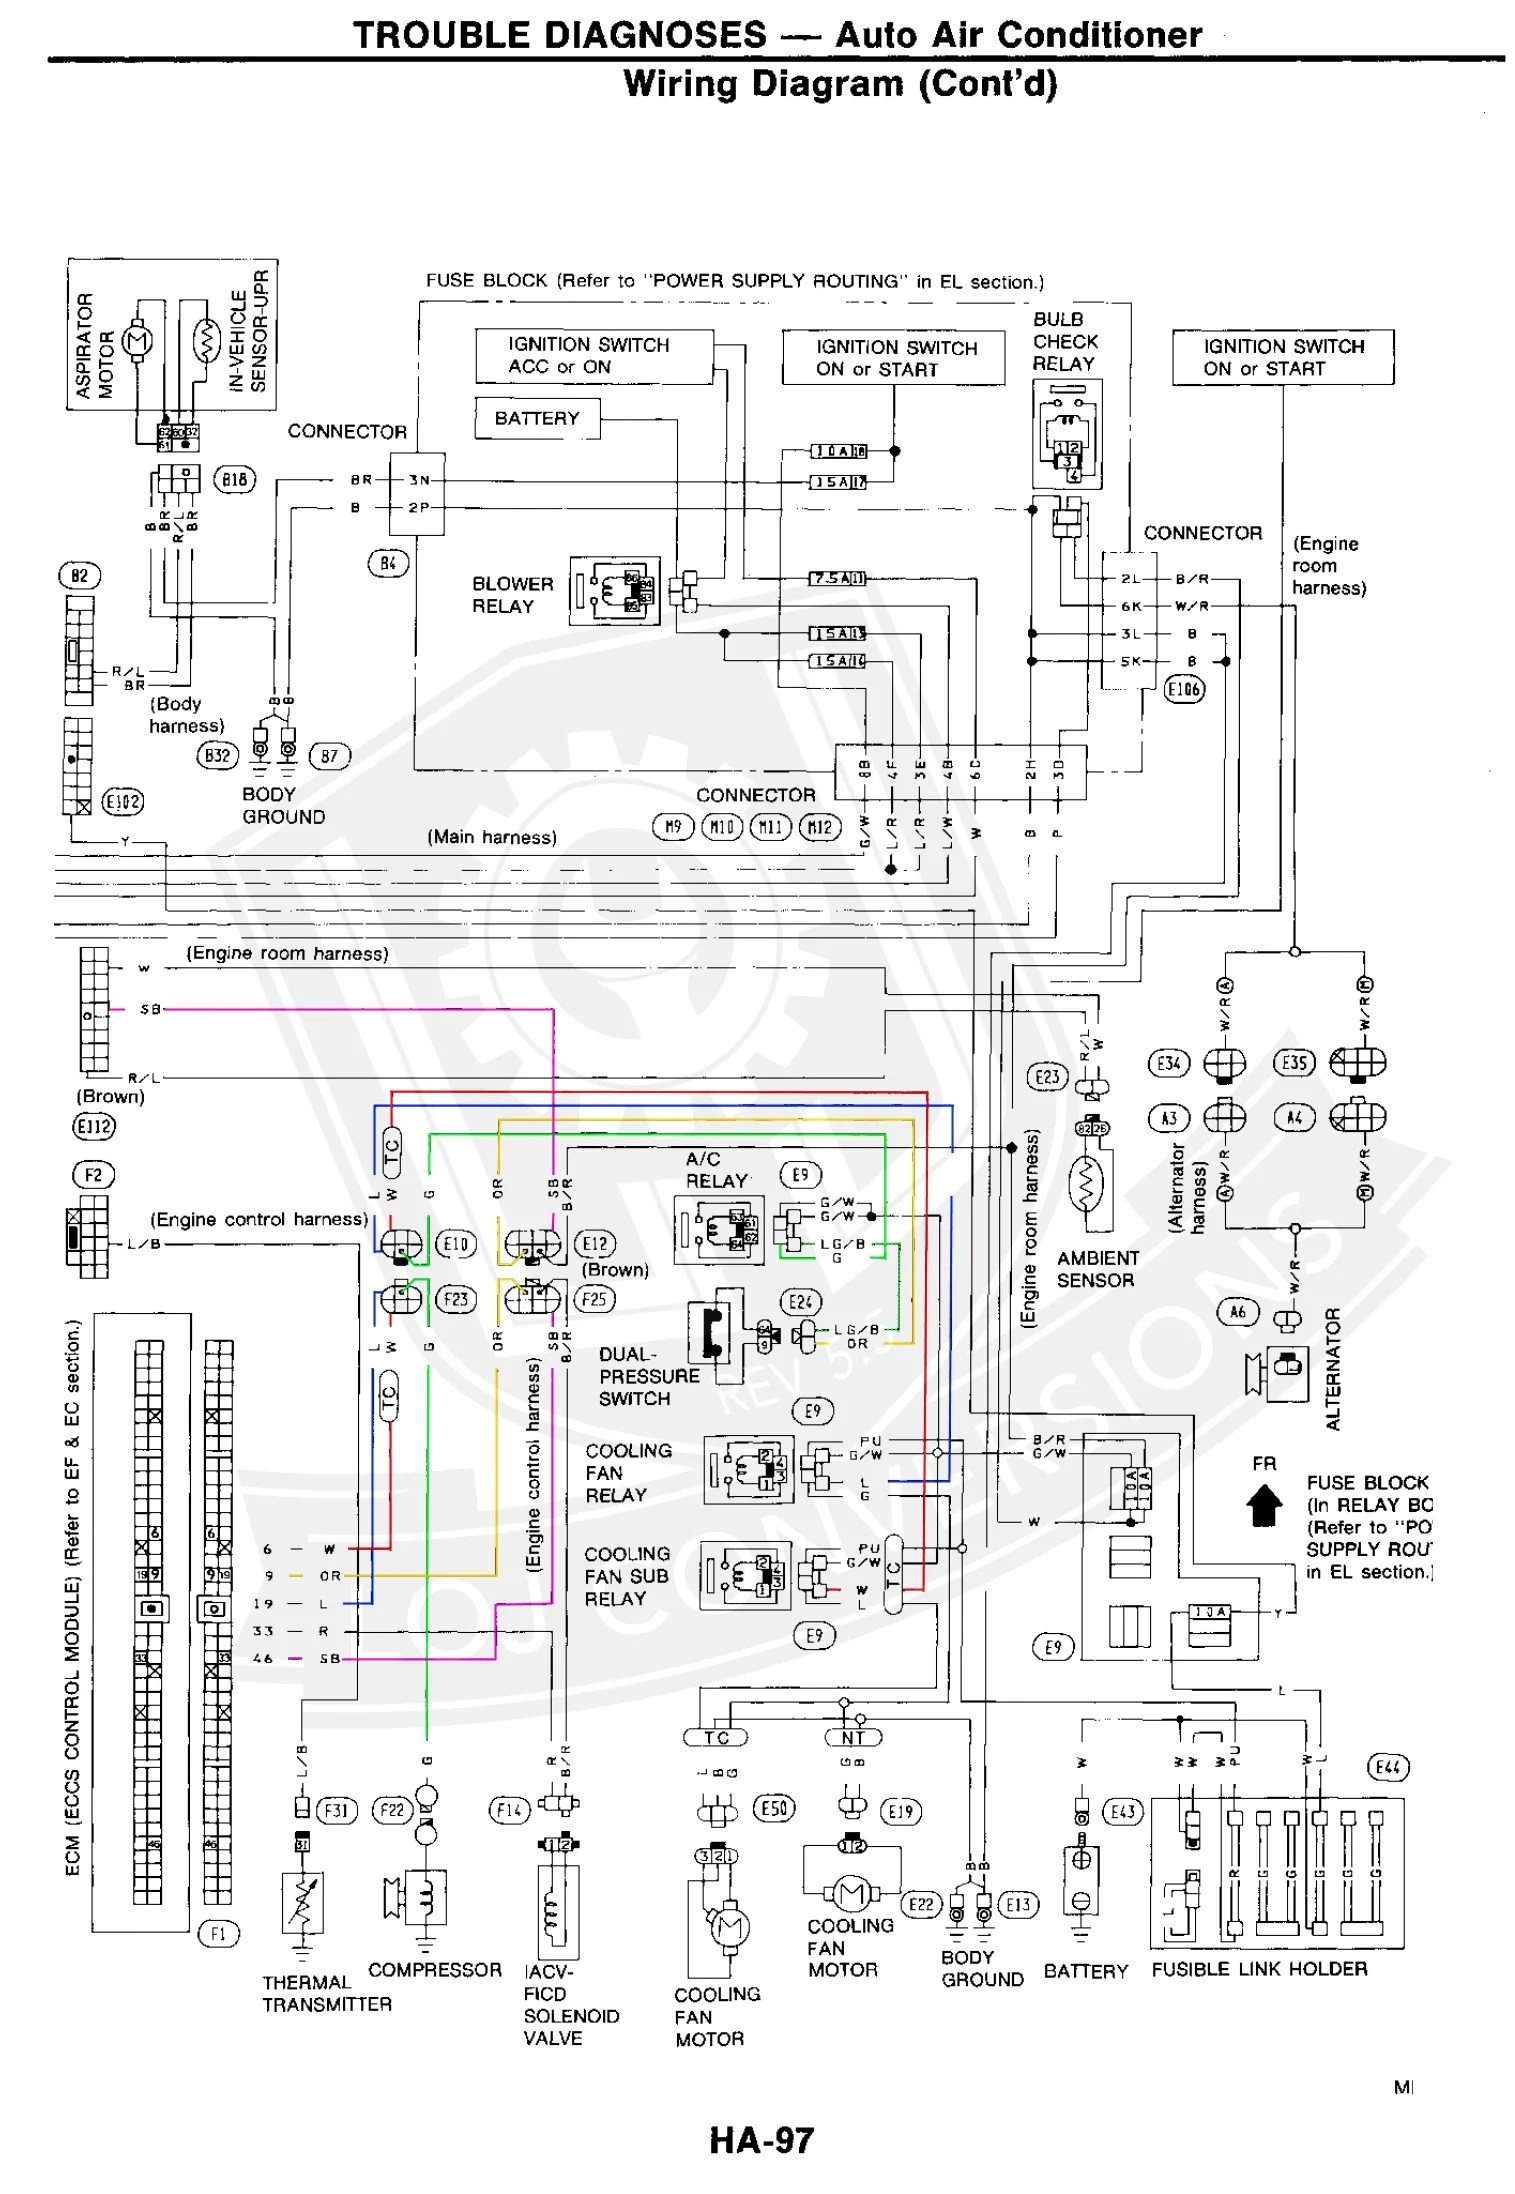 medium resolution of 1990 nissan 300zx fuse panel diagram wiring schematic wiring 1990 nissan 300zx fuse panel diagram